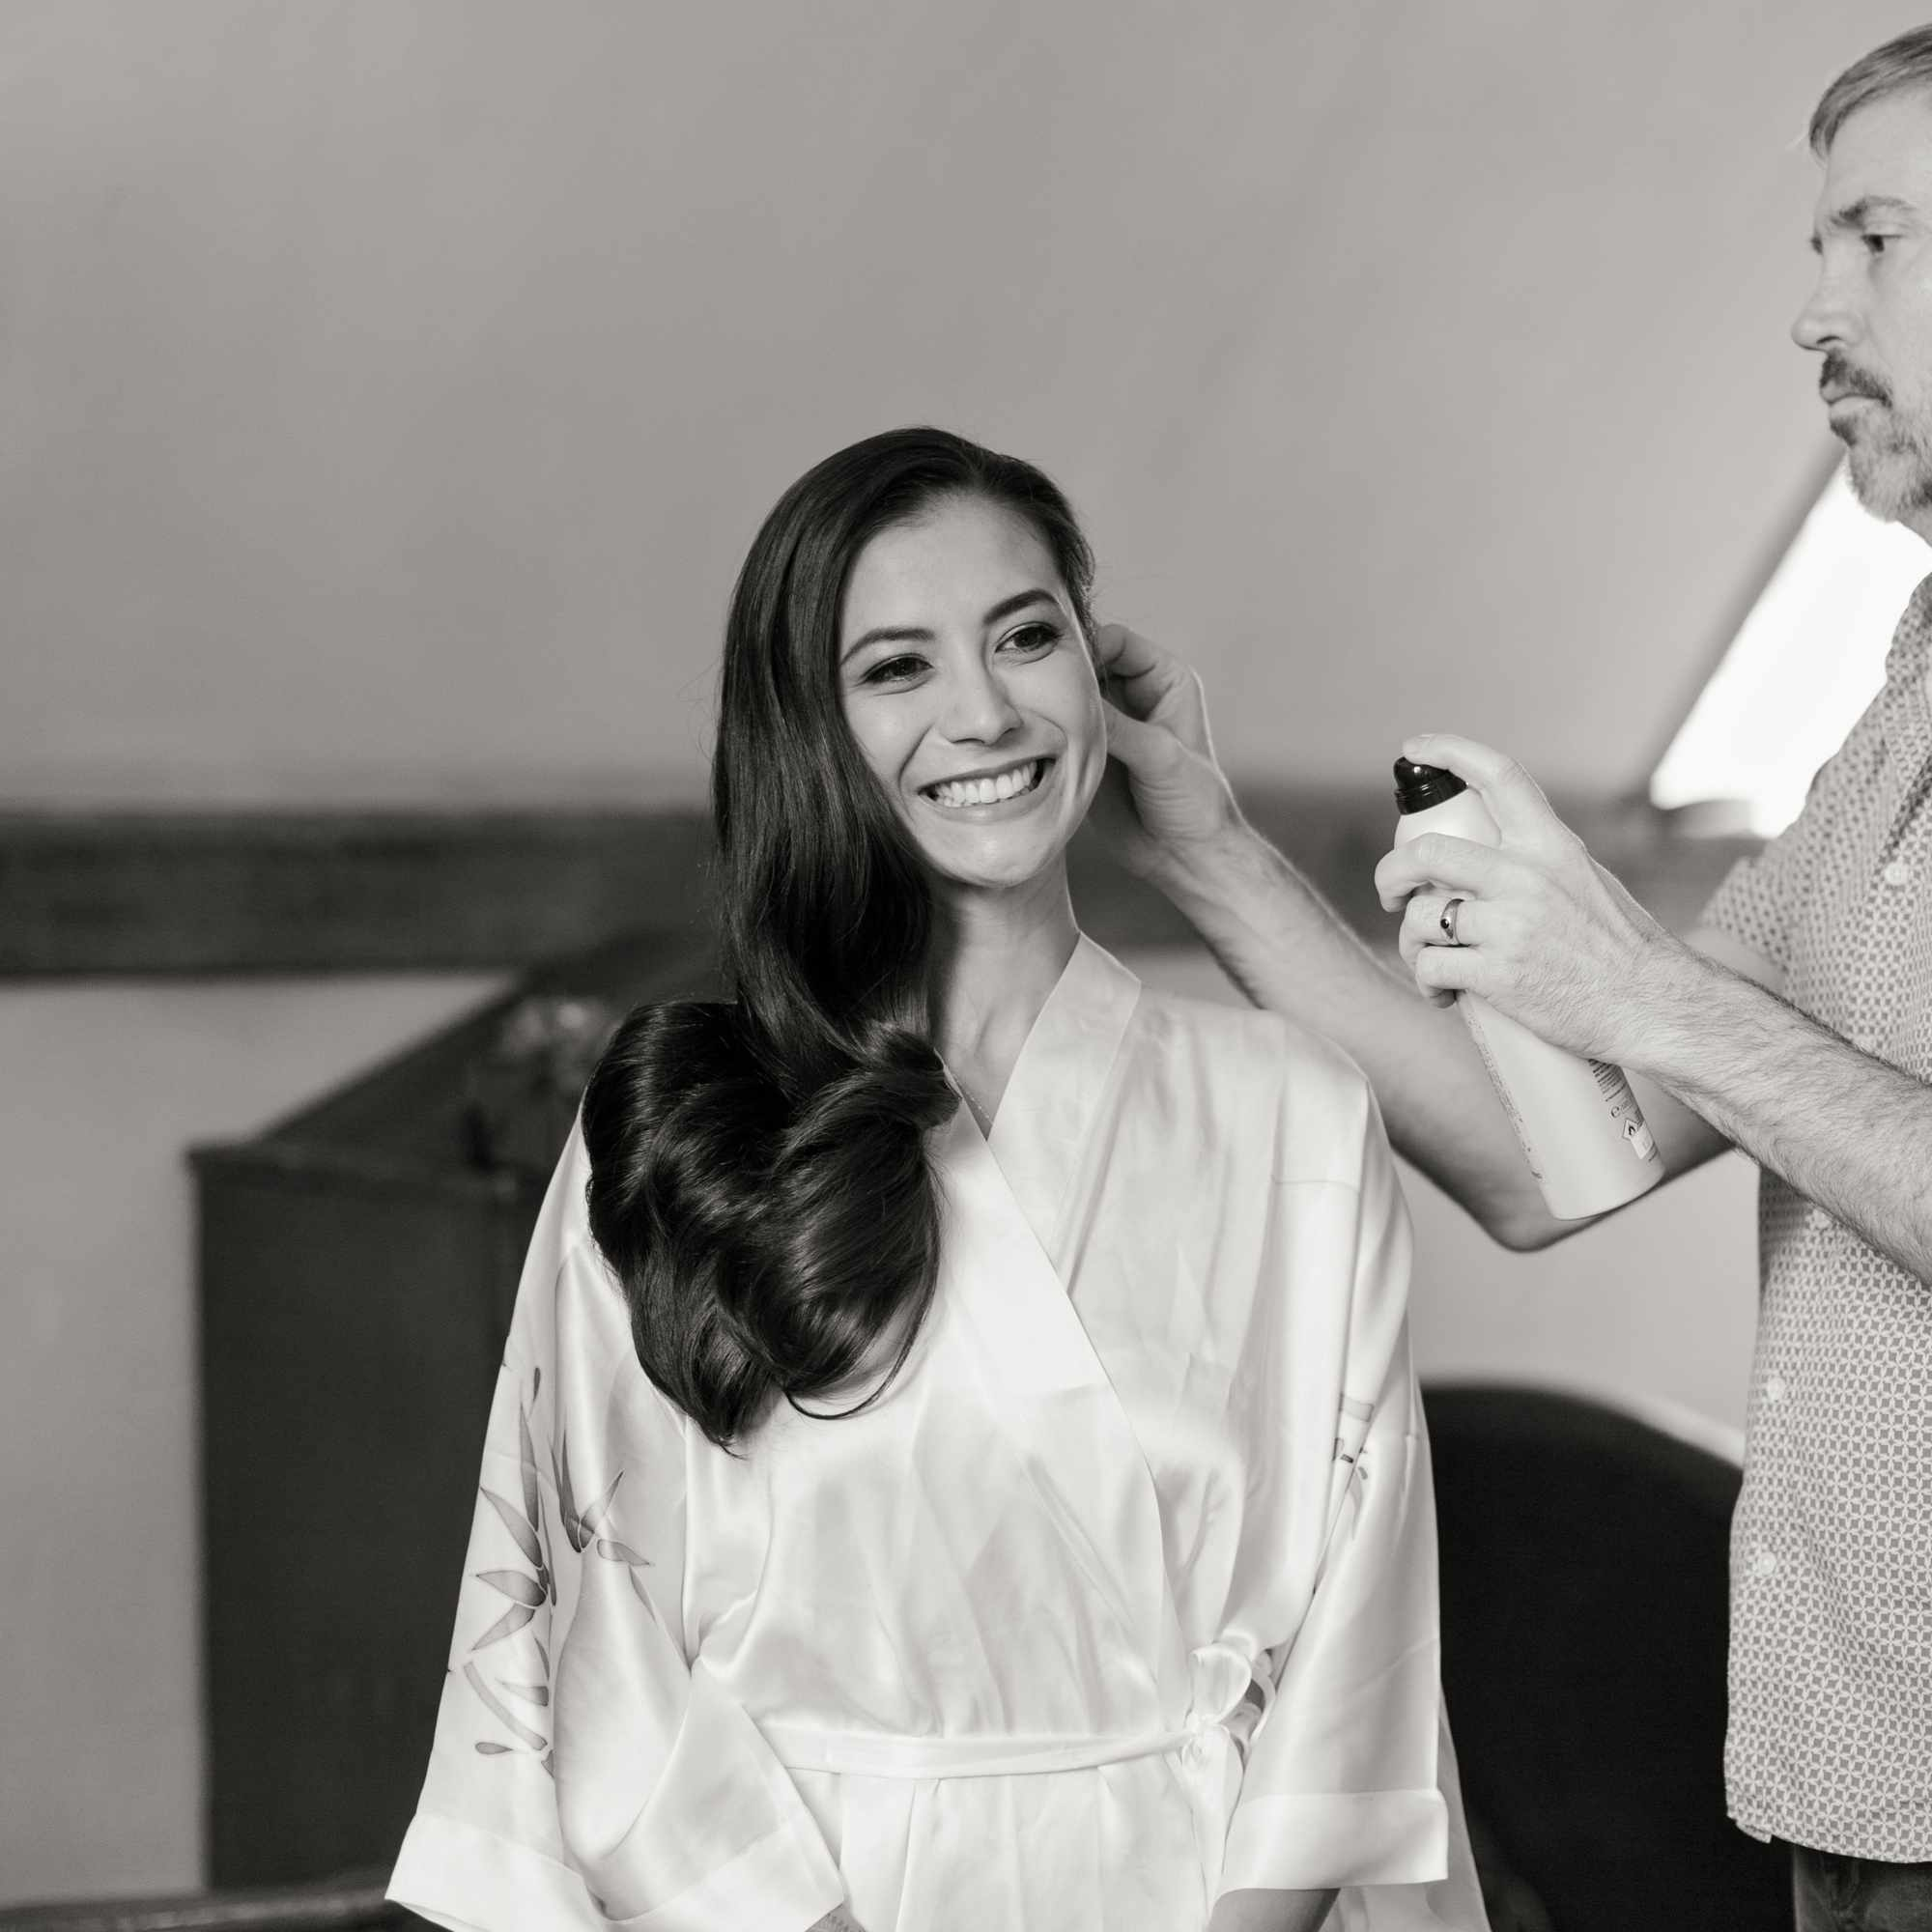 Hair stylist putting hair spray in brides shiny blowout